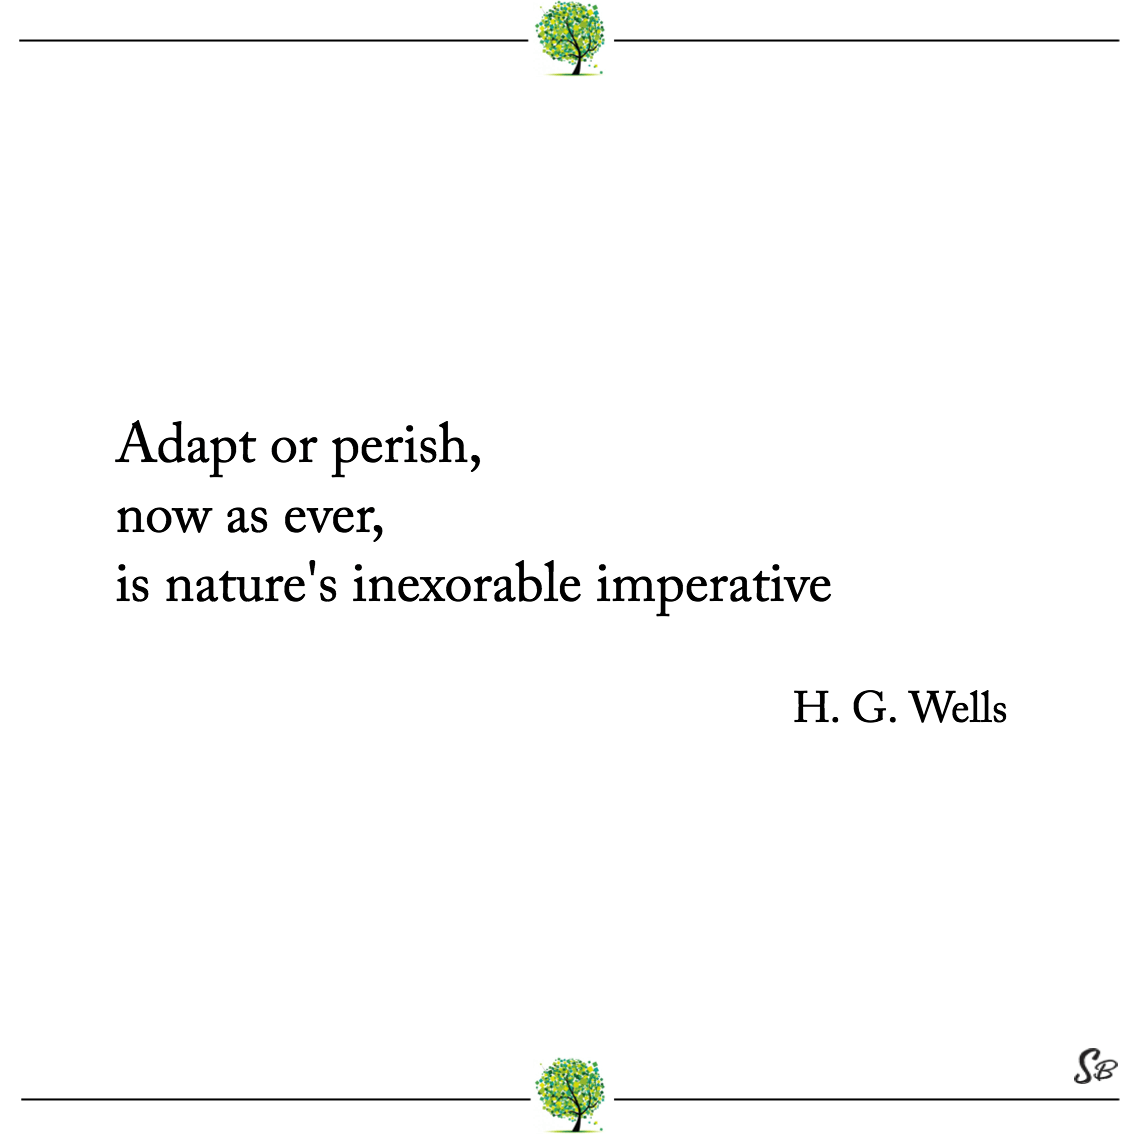 Adapt or perish, now as ever, is nature's inexorable imperative h. g. wells